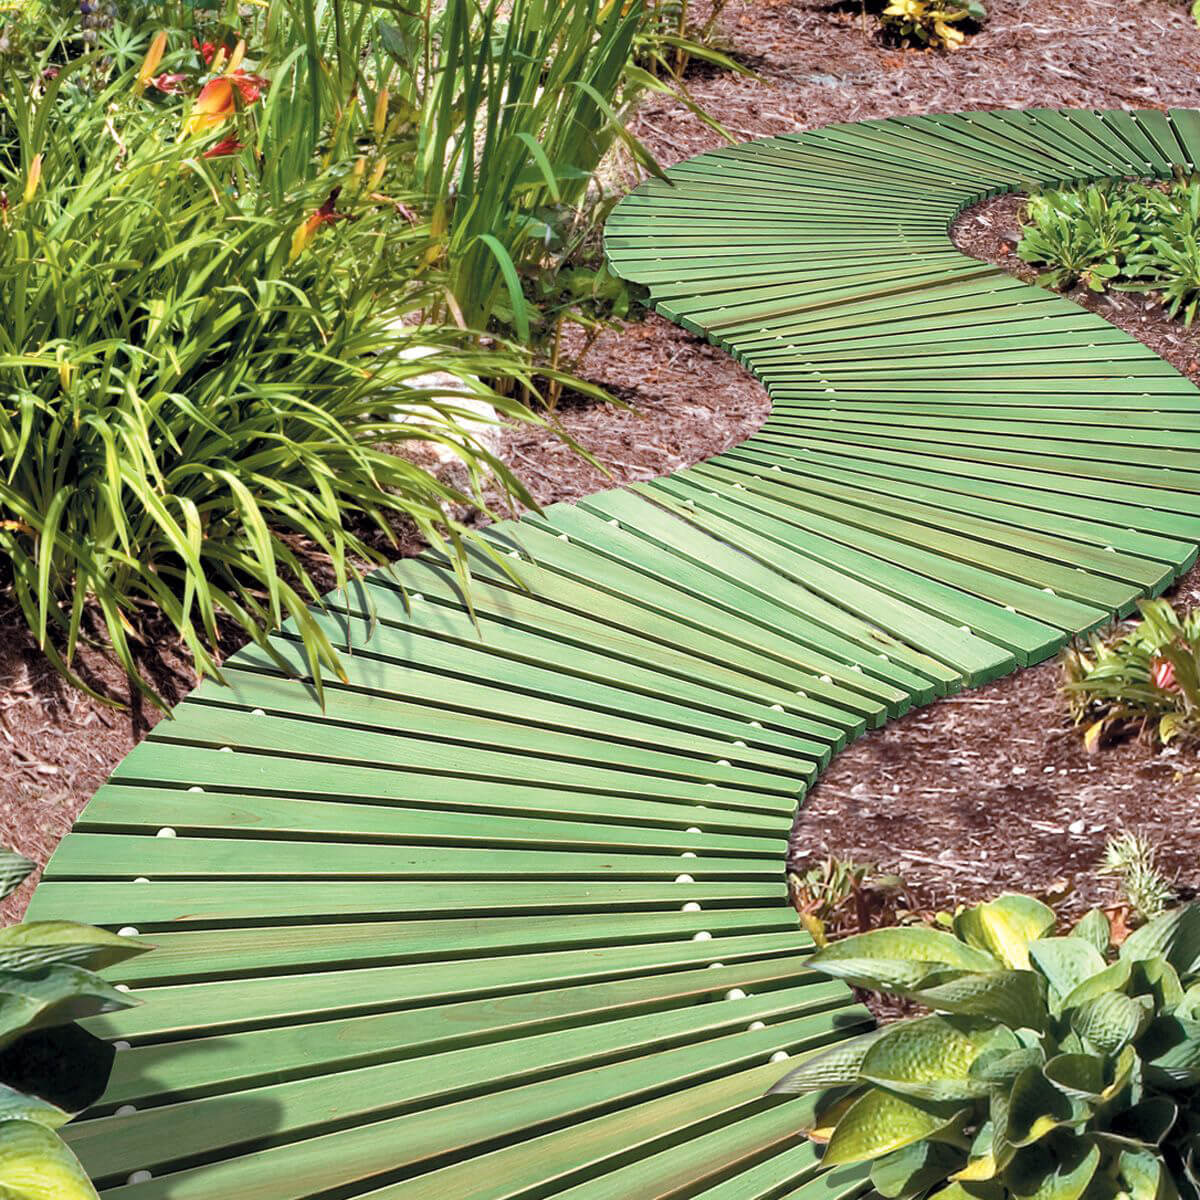 Walkways And Paths: 16 Design Ideas For Beautiful Garden Paths